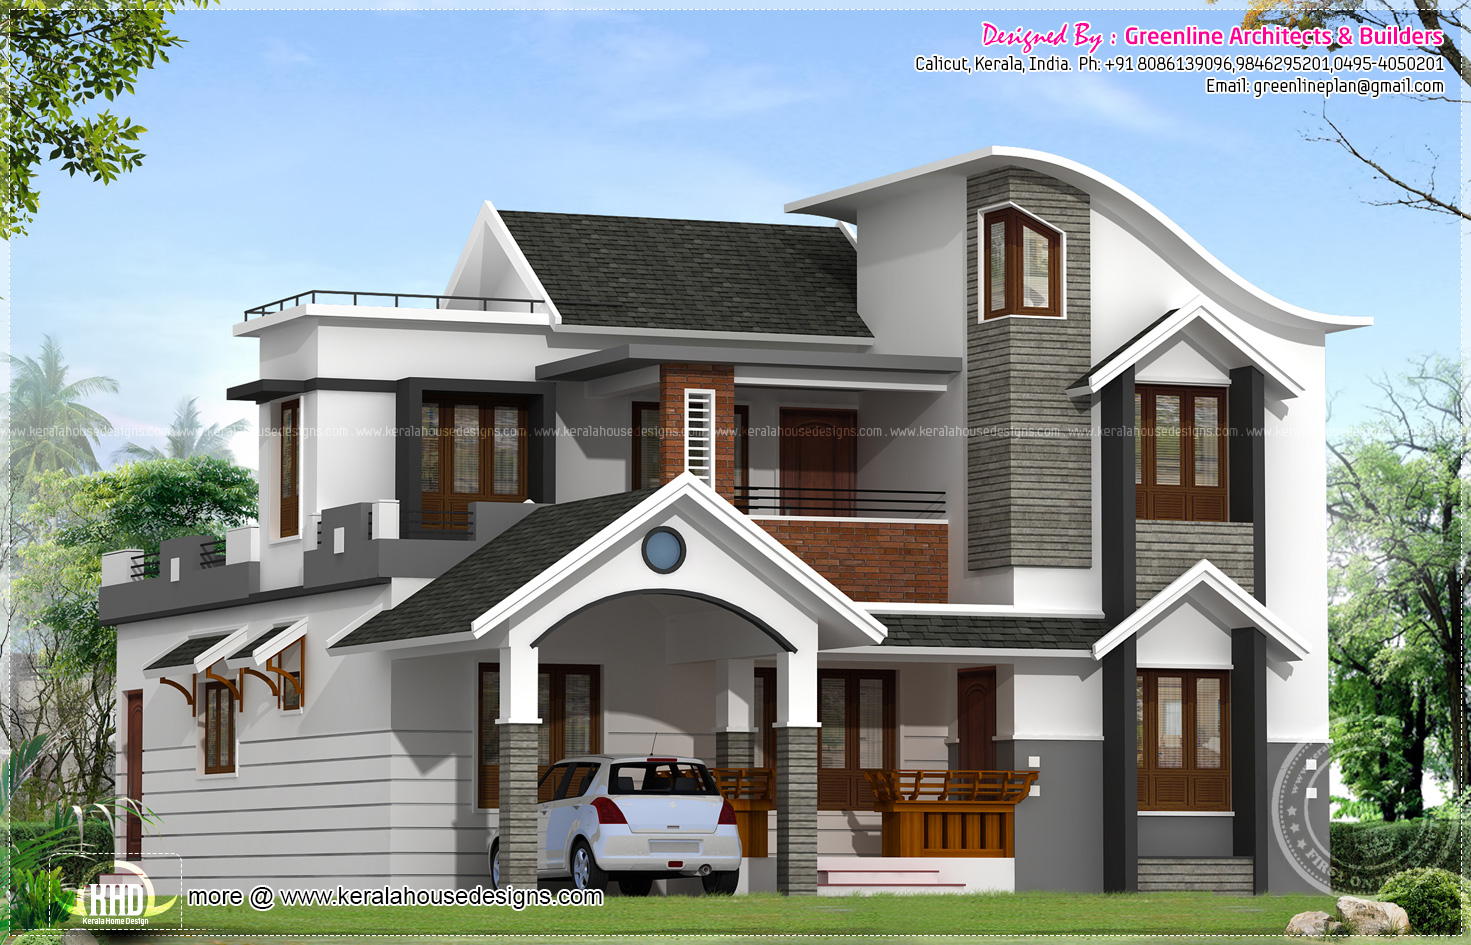 May 2013 kerala home design and floor plans Contemporary style house